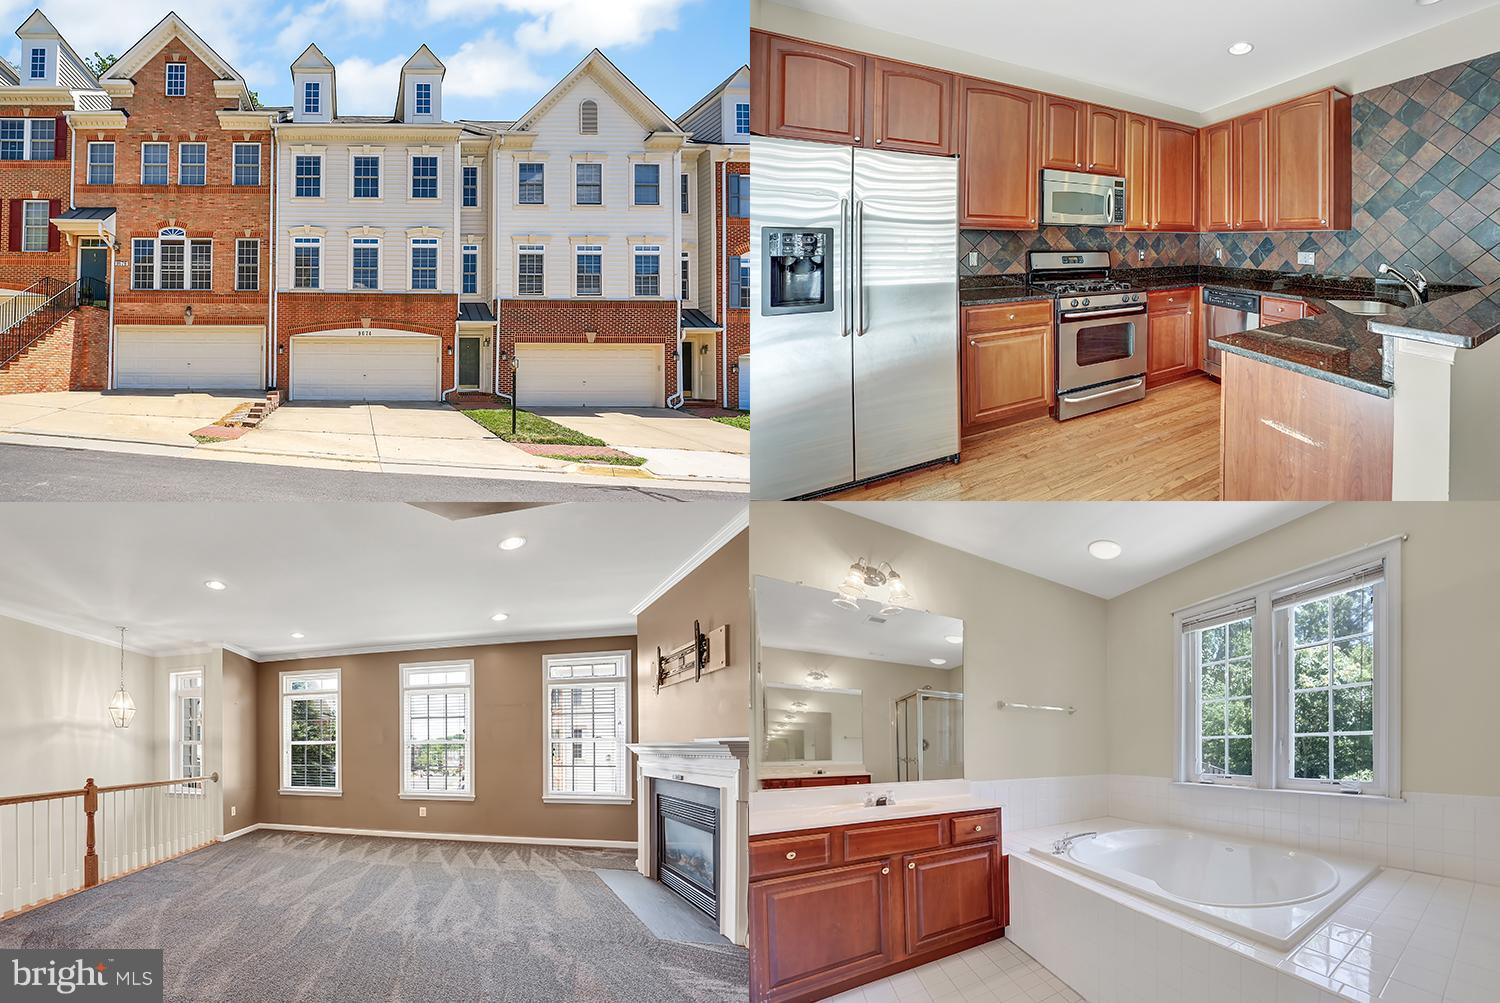 Well maintained town home in premier commuters location! Spacious with nearly 2,000 sq ft! Gourmet kitchen with hardwood floors, stainless steel appliances and access to awesome deck! Private back yard. Large master suite with luxury bath! Move In Ready! Close to shopping, major roads, and more!